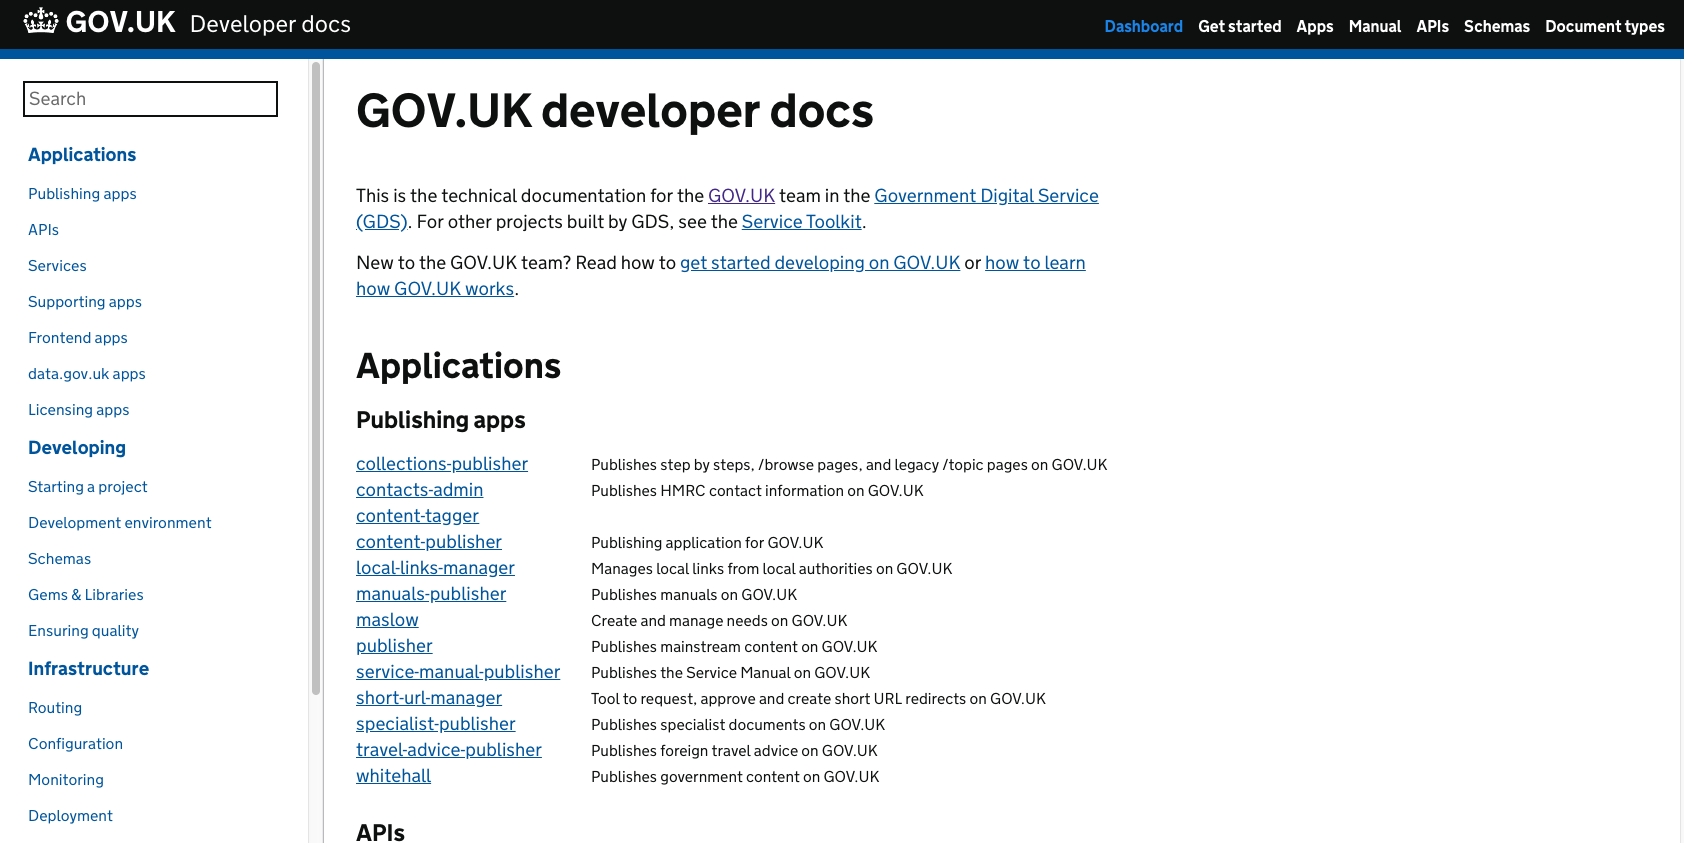 GOV.UK Developer docs screenshot